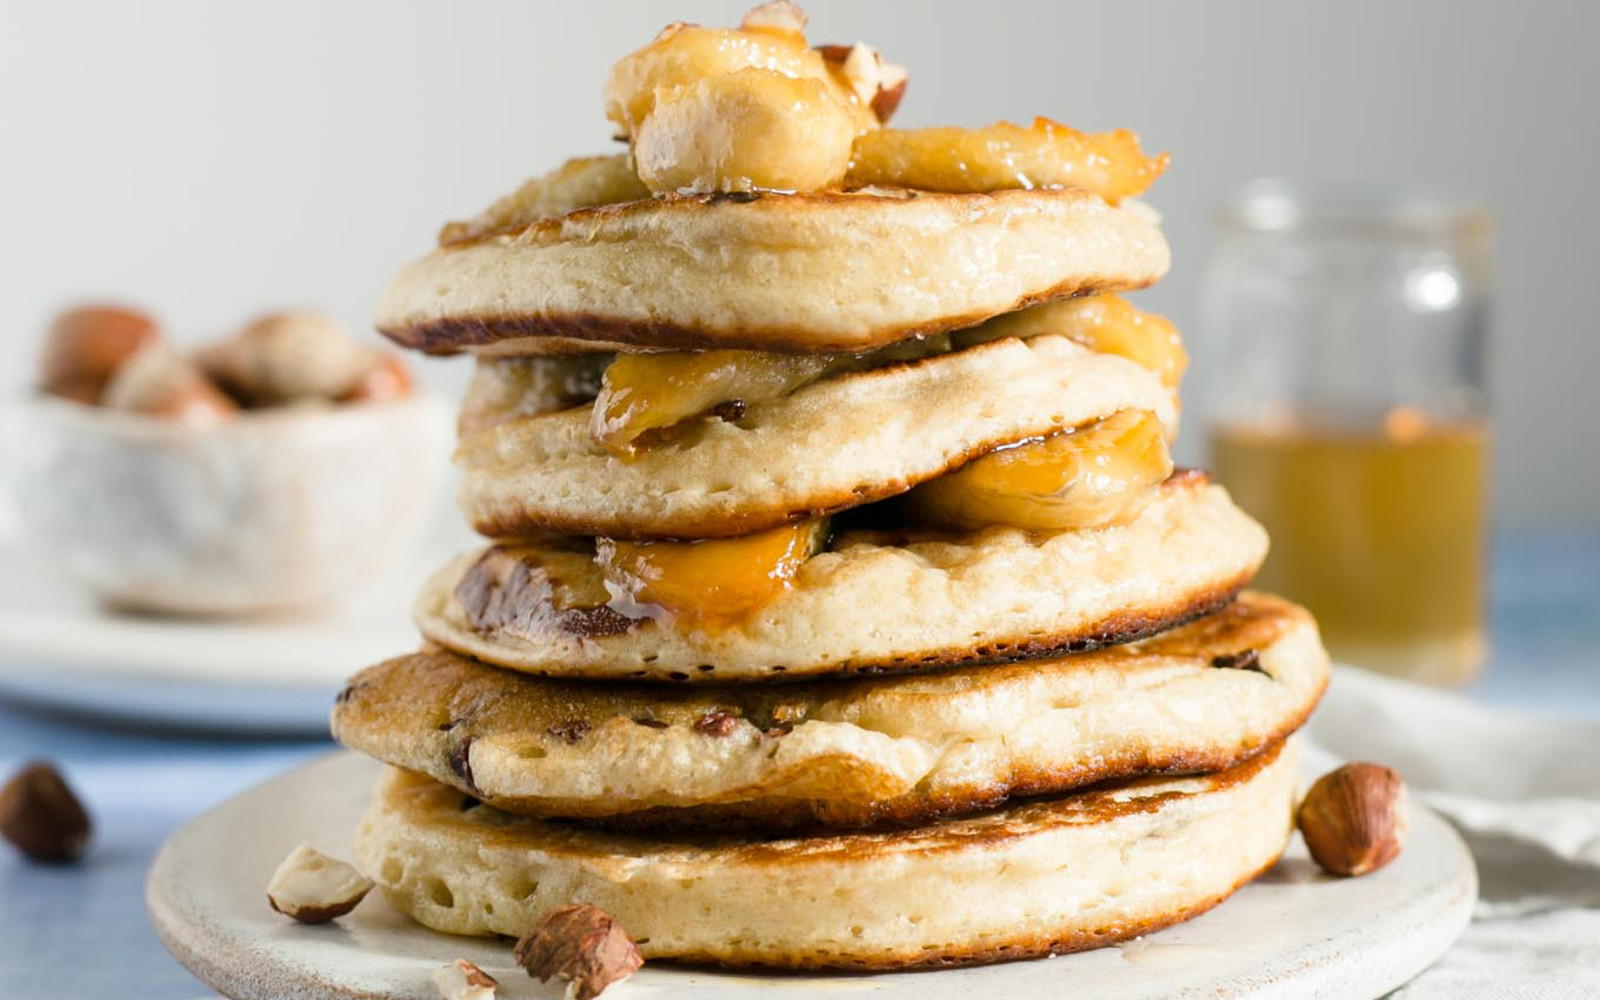 Vegan Caramelized Banana and Hazelnut Pancakes